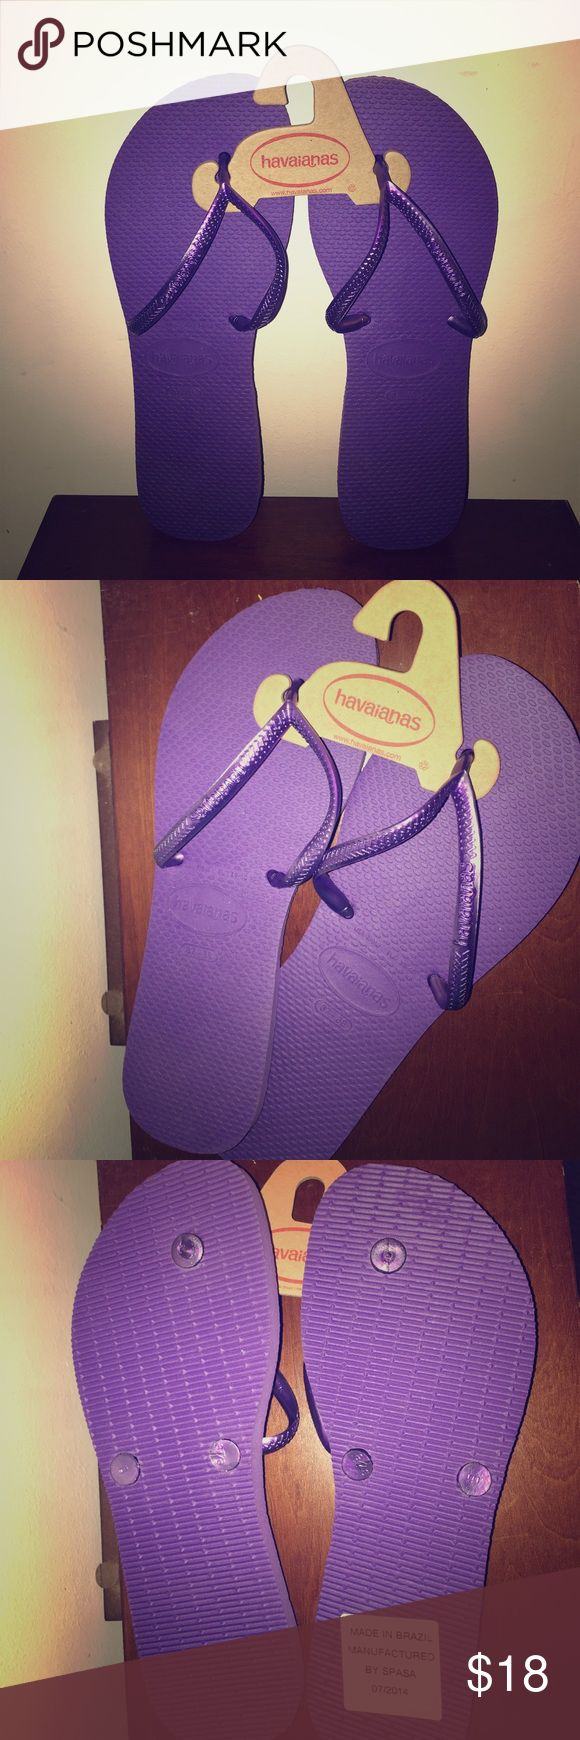 NWT 💝 Havaianas Purple 💜 Flip Flops Brand new Havaianas in a beautiful Purple color! Never worn. Smoke free. Bundle for additional discounts 🛍. Havaianas Shoes Sandals